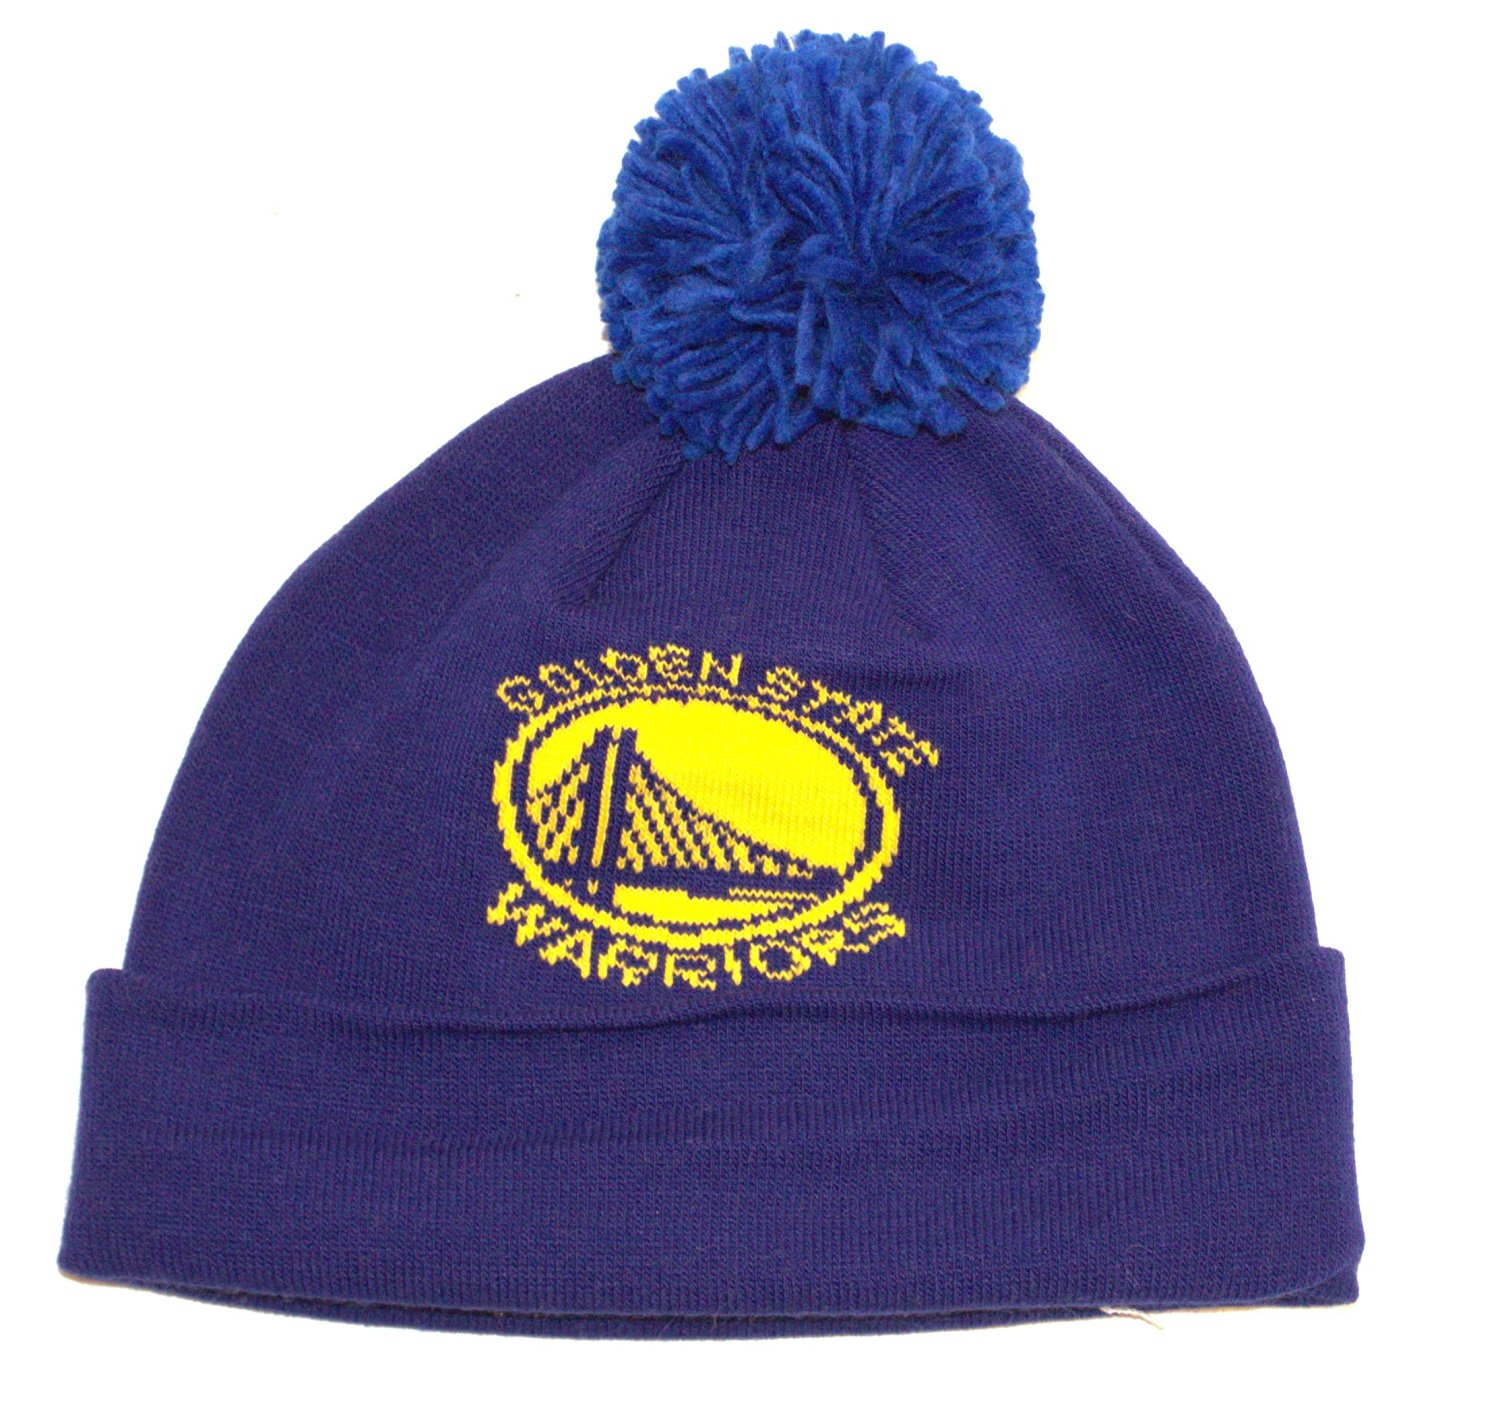 57d5766af70 NBA Officially Licensed Golden State Warriors Blue Cuffed Pom Beanie Hat Cap  Lid